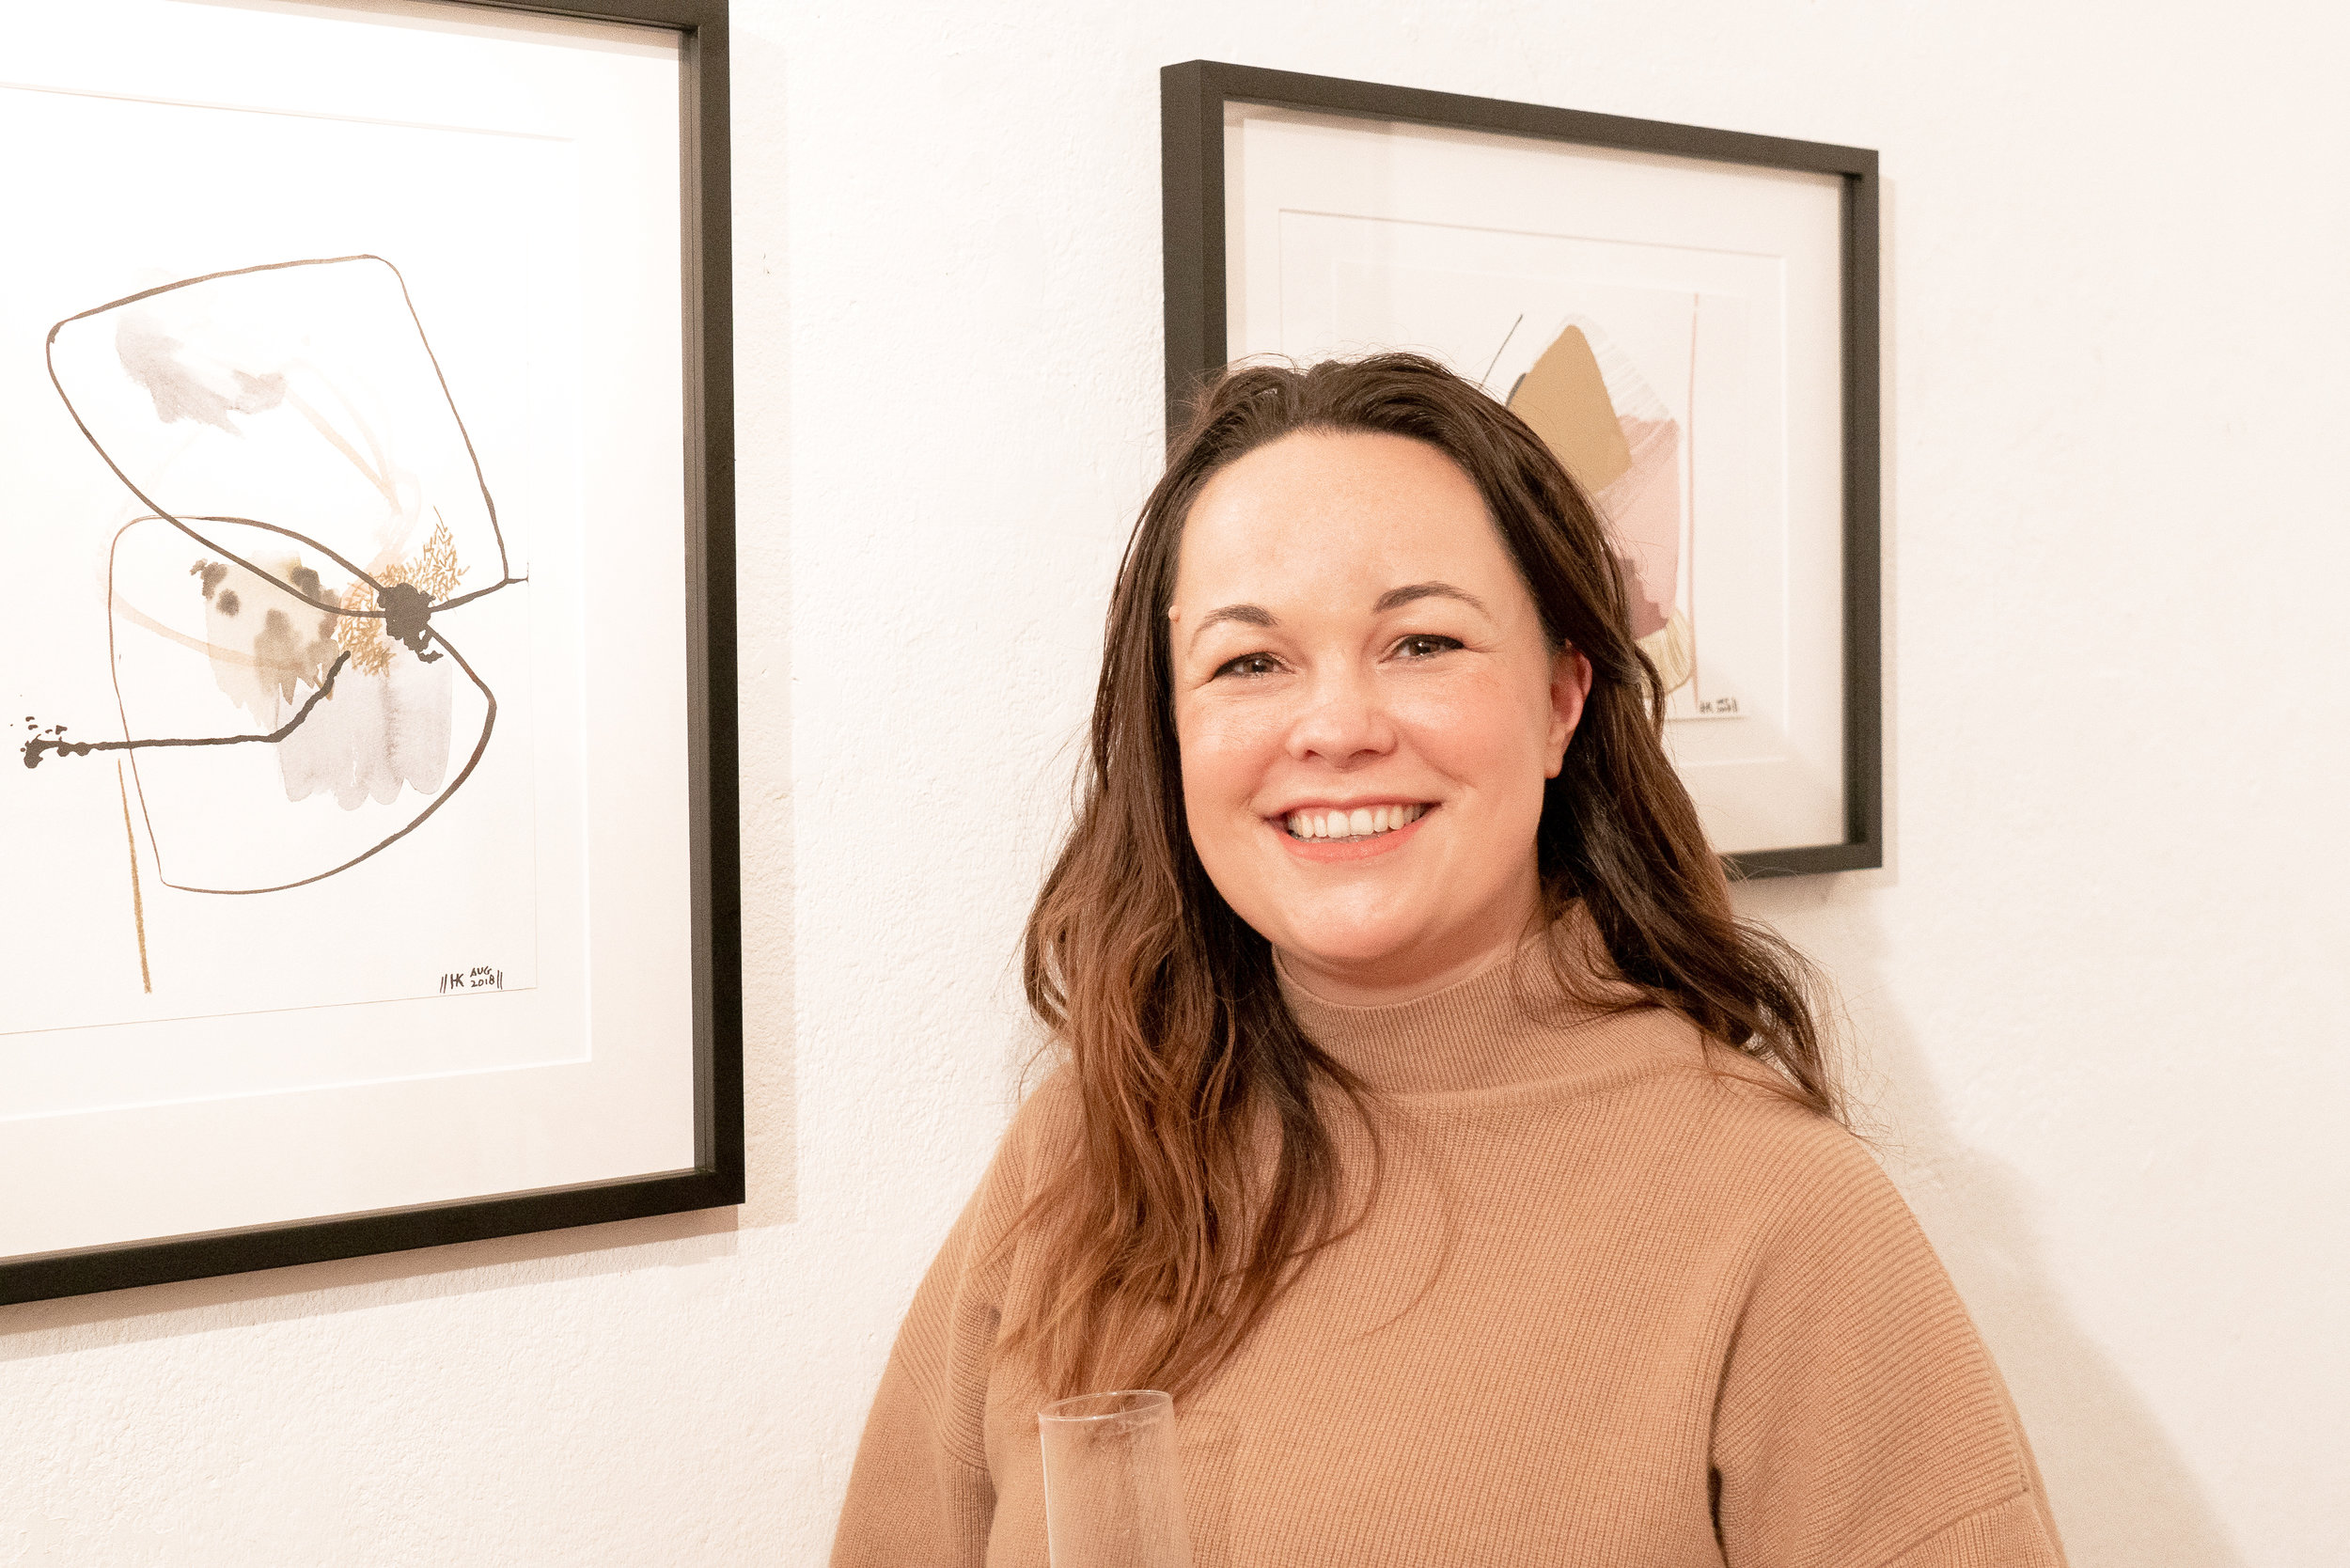 Hannah is unu's E2E Manager for the Netherlands and uses her artistic background to think outside the box